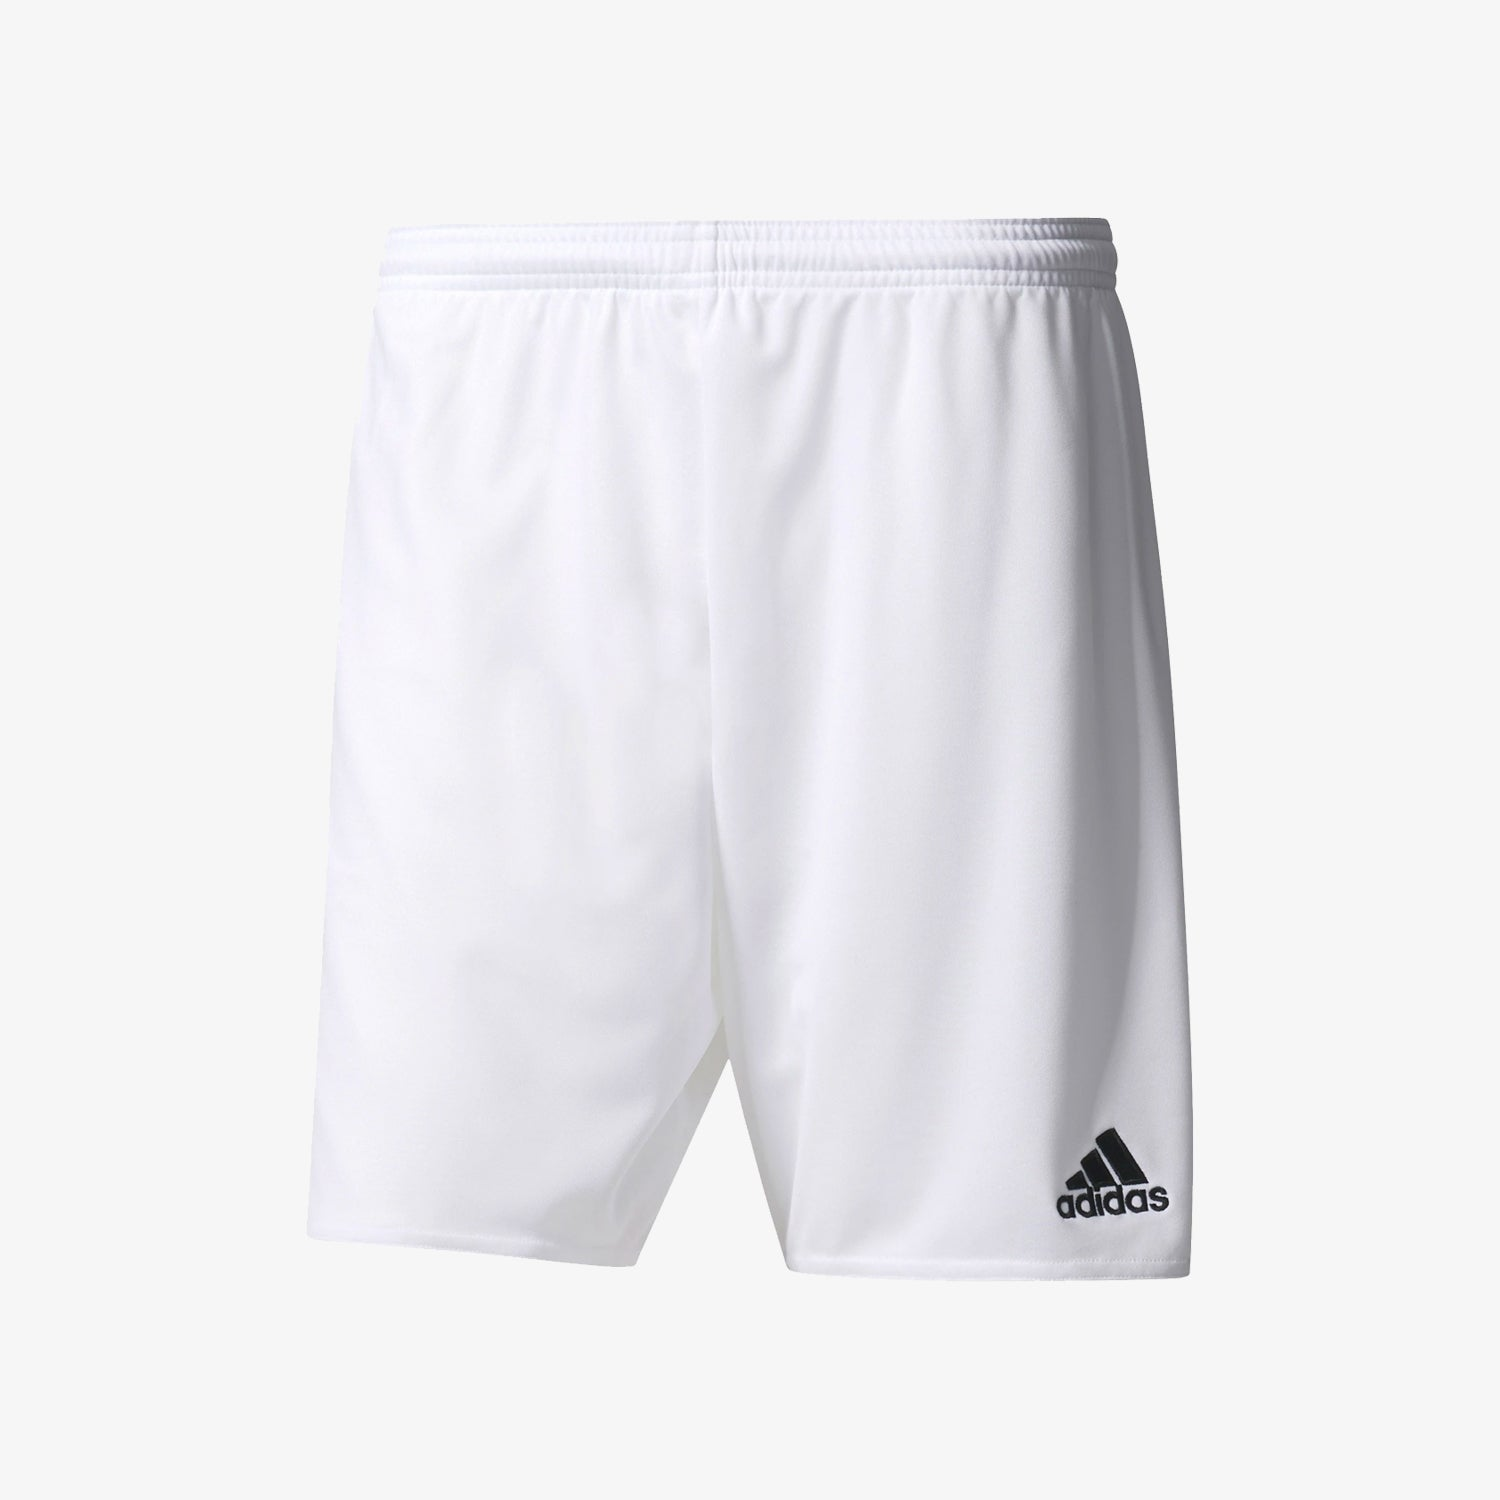 Parma 16 Soccer Shorts Men's